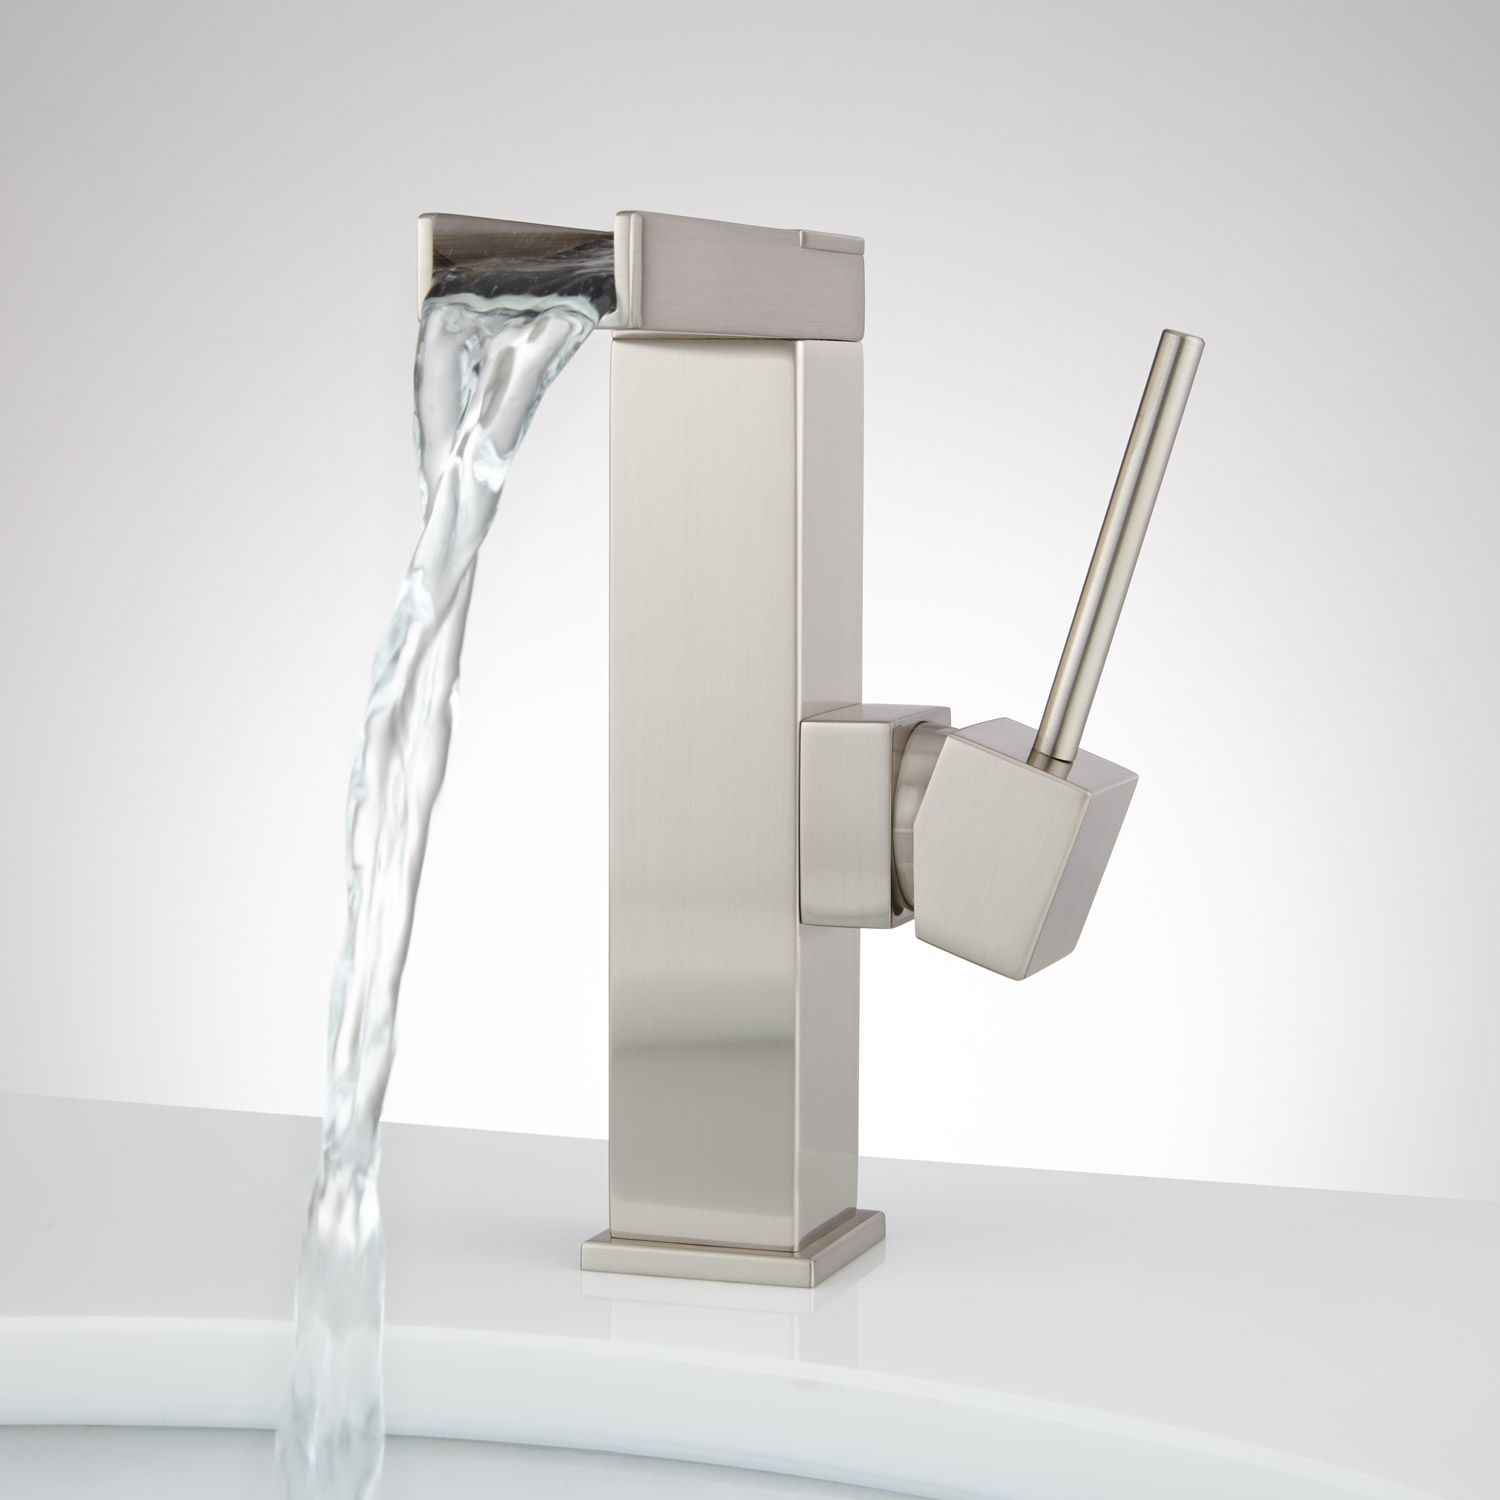 Xaiver Single-Hole Waterfall Bathroom Faucet | Faucets, Waterfall ...